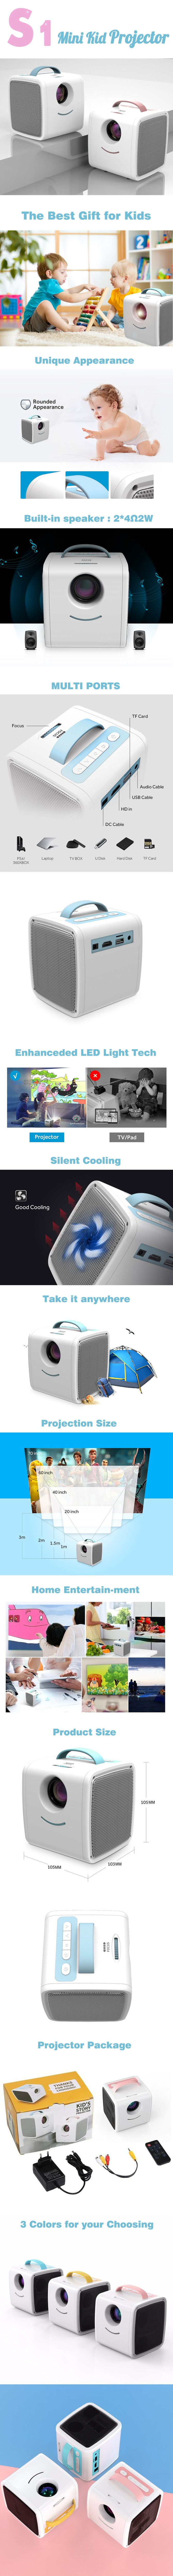 S1 Unique Design Mini Kids' Projector for gifts